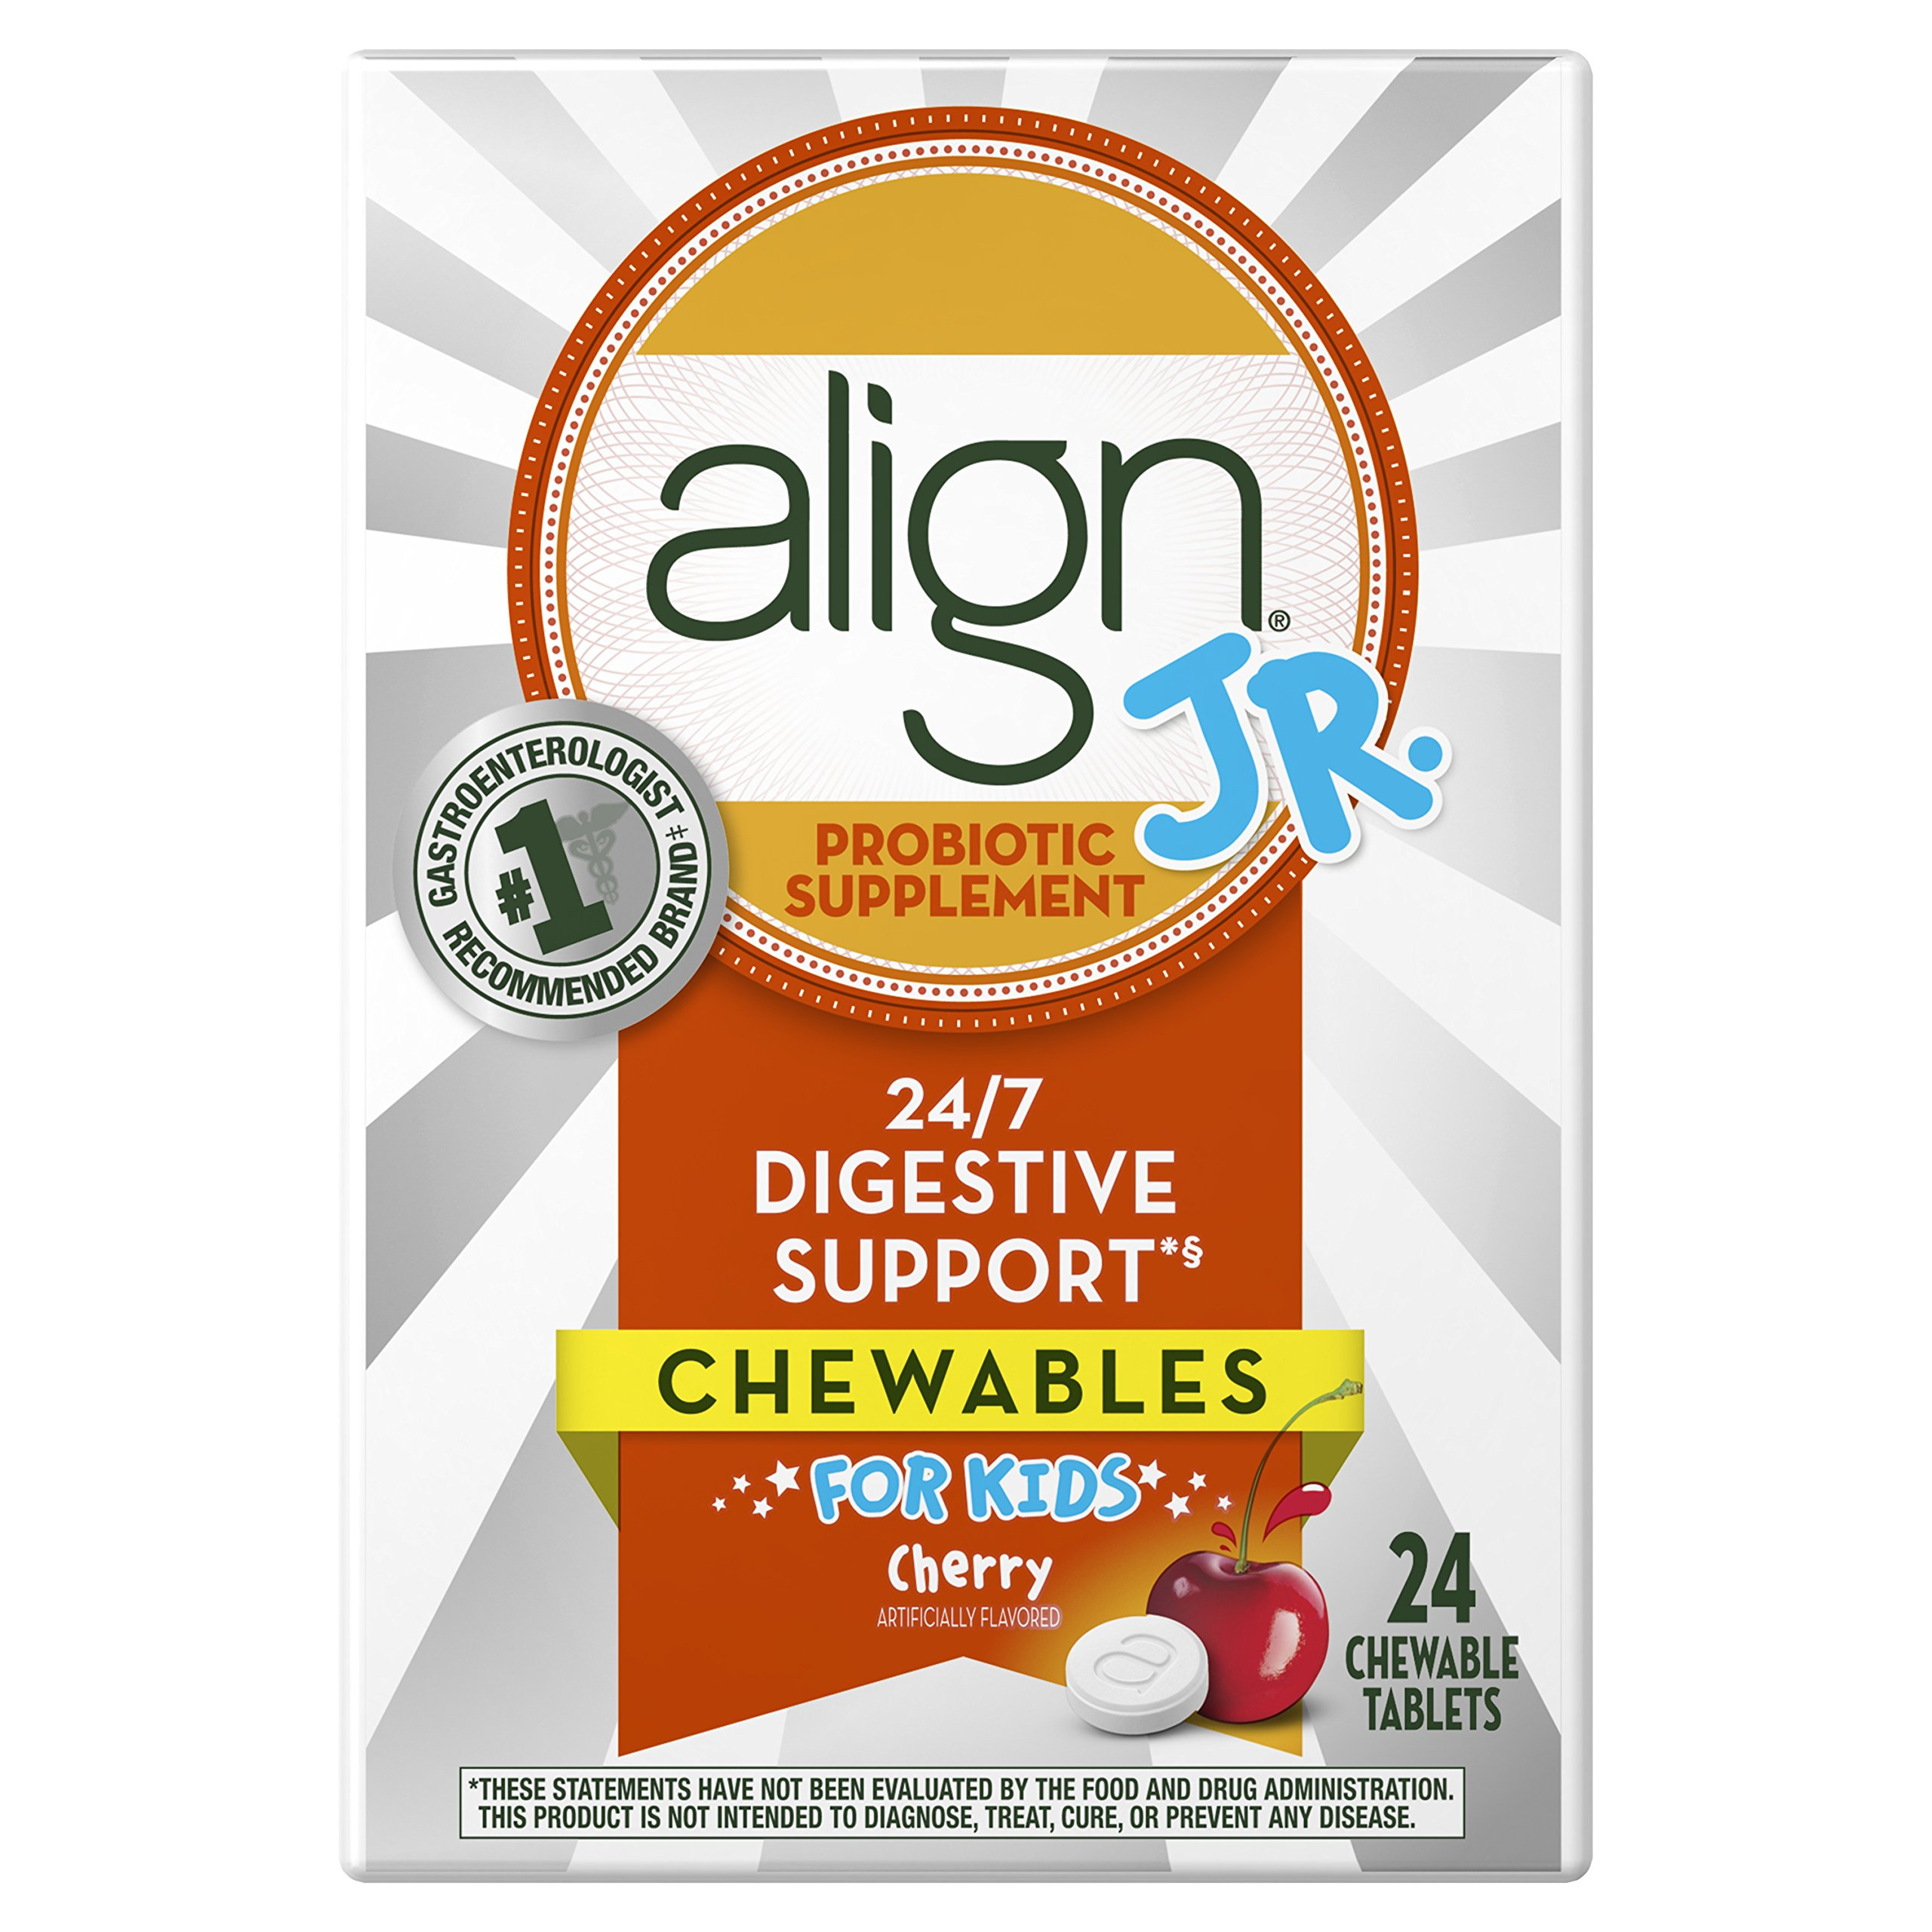 Align Jr. Probiotic Supplement for Kids 24ct Cherry Chewables (Packaging May Vary)